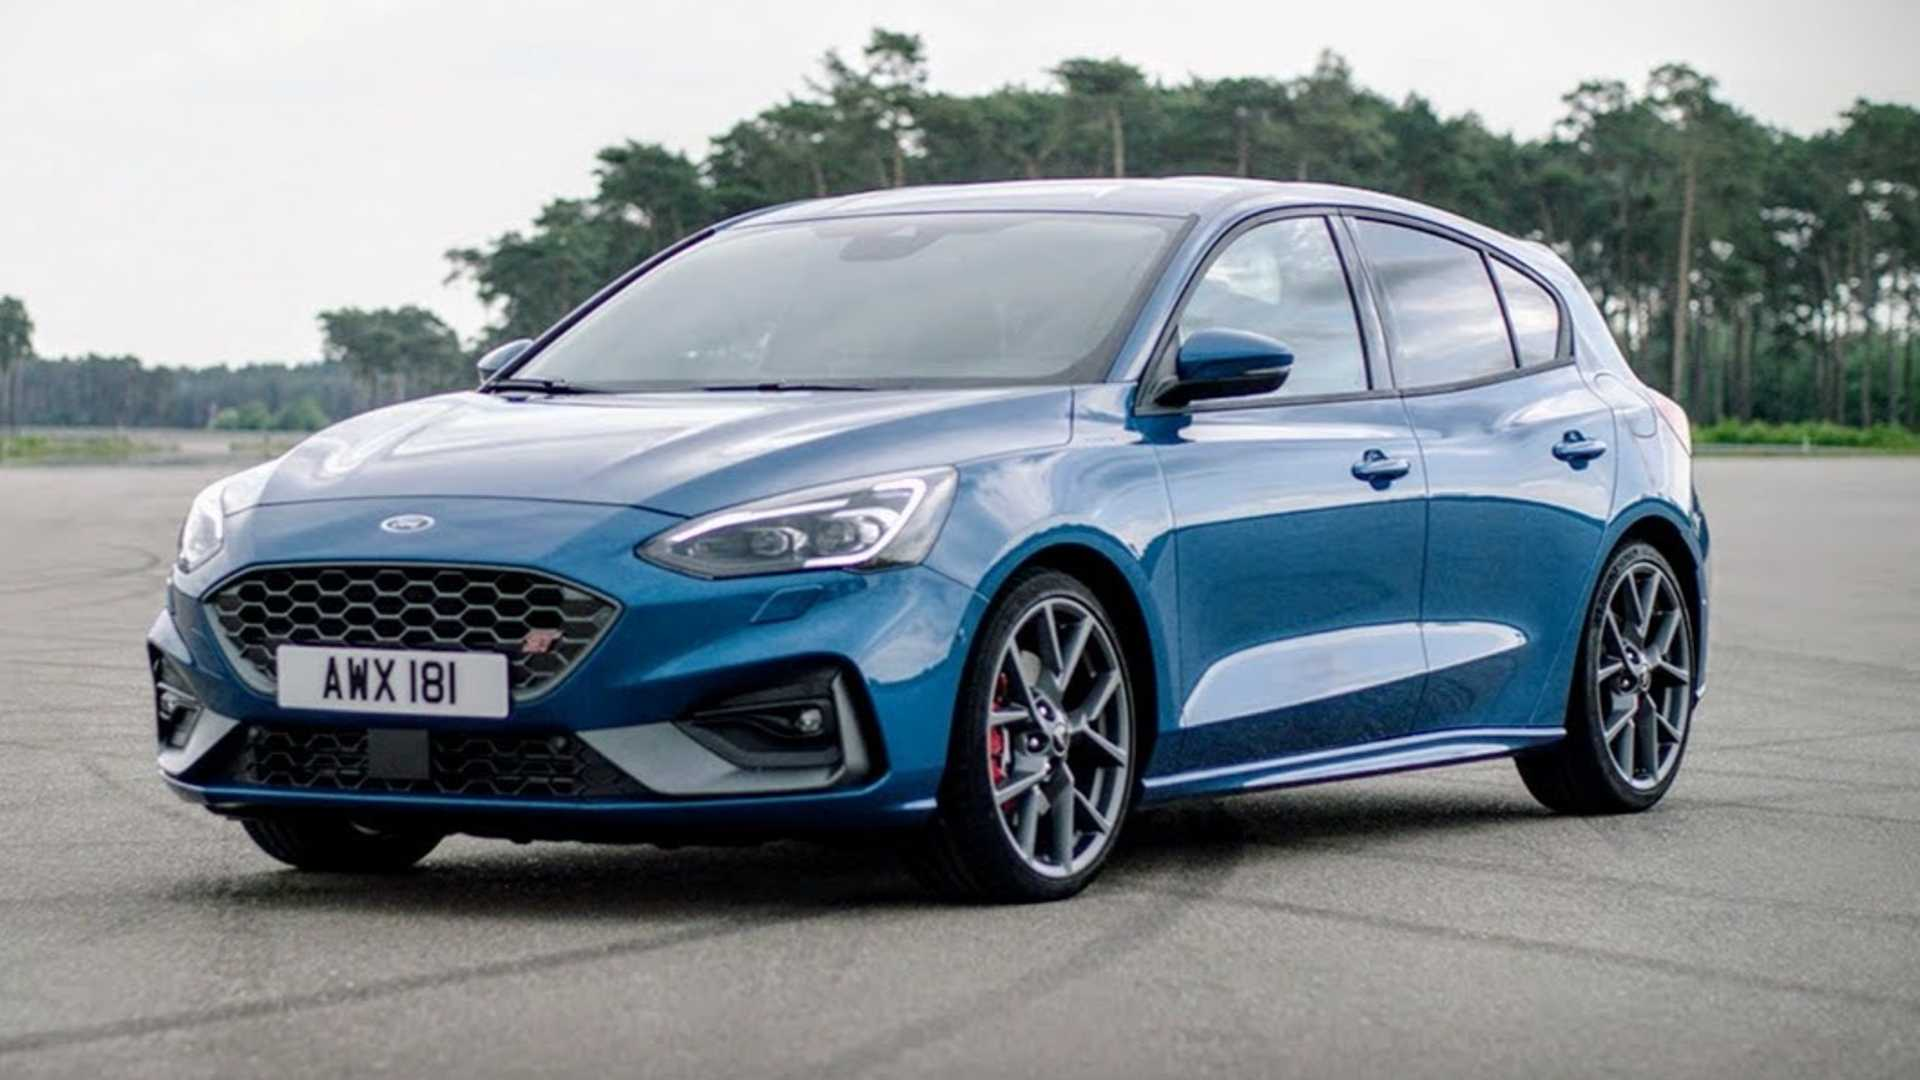 Ford Focus 2020 Review.Ford Focus 2020 Review Cars 2020